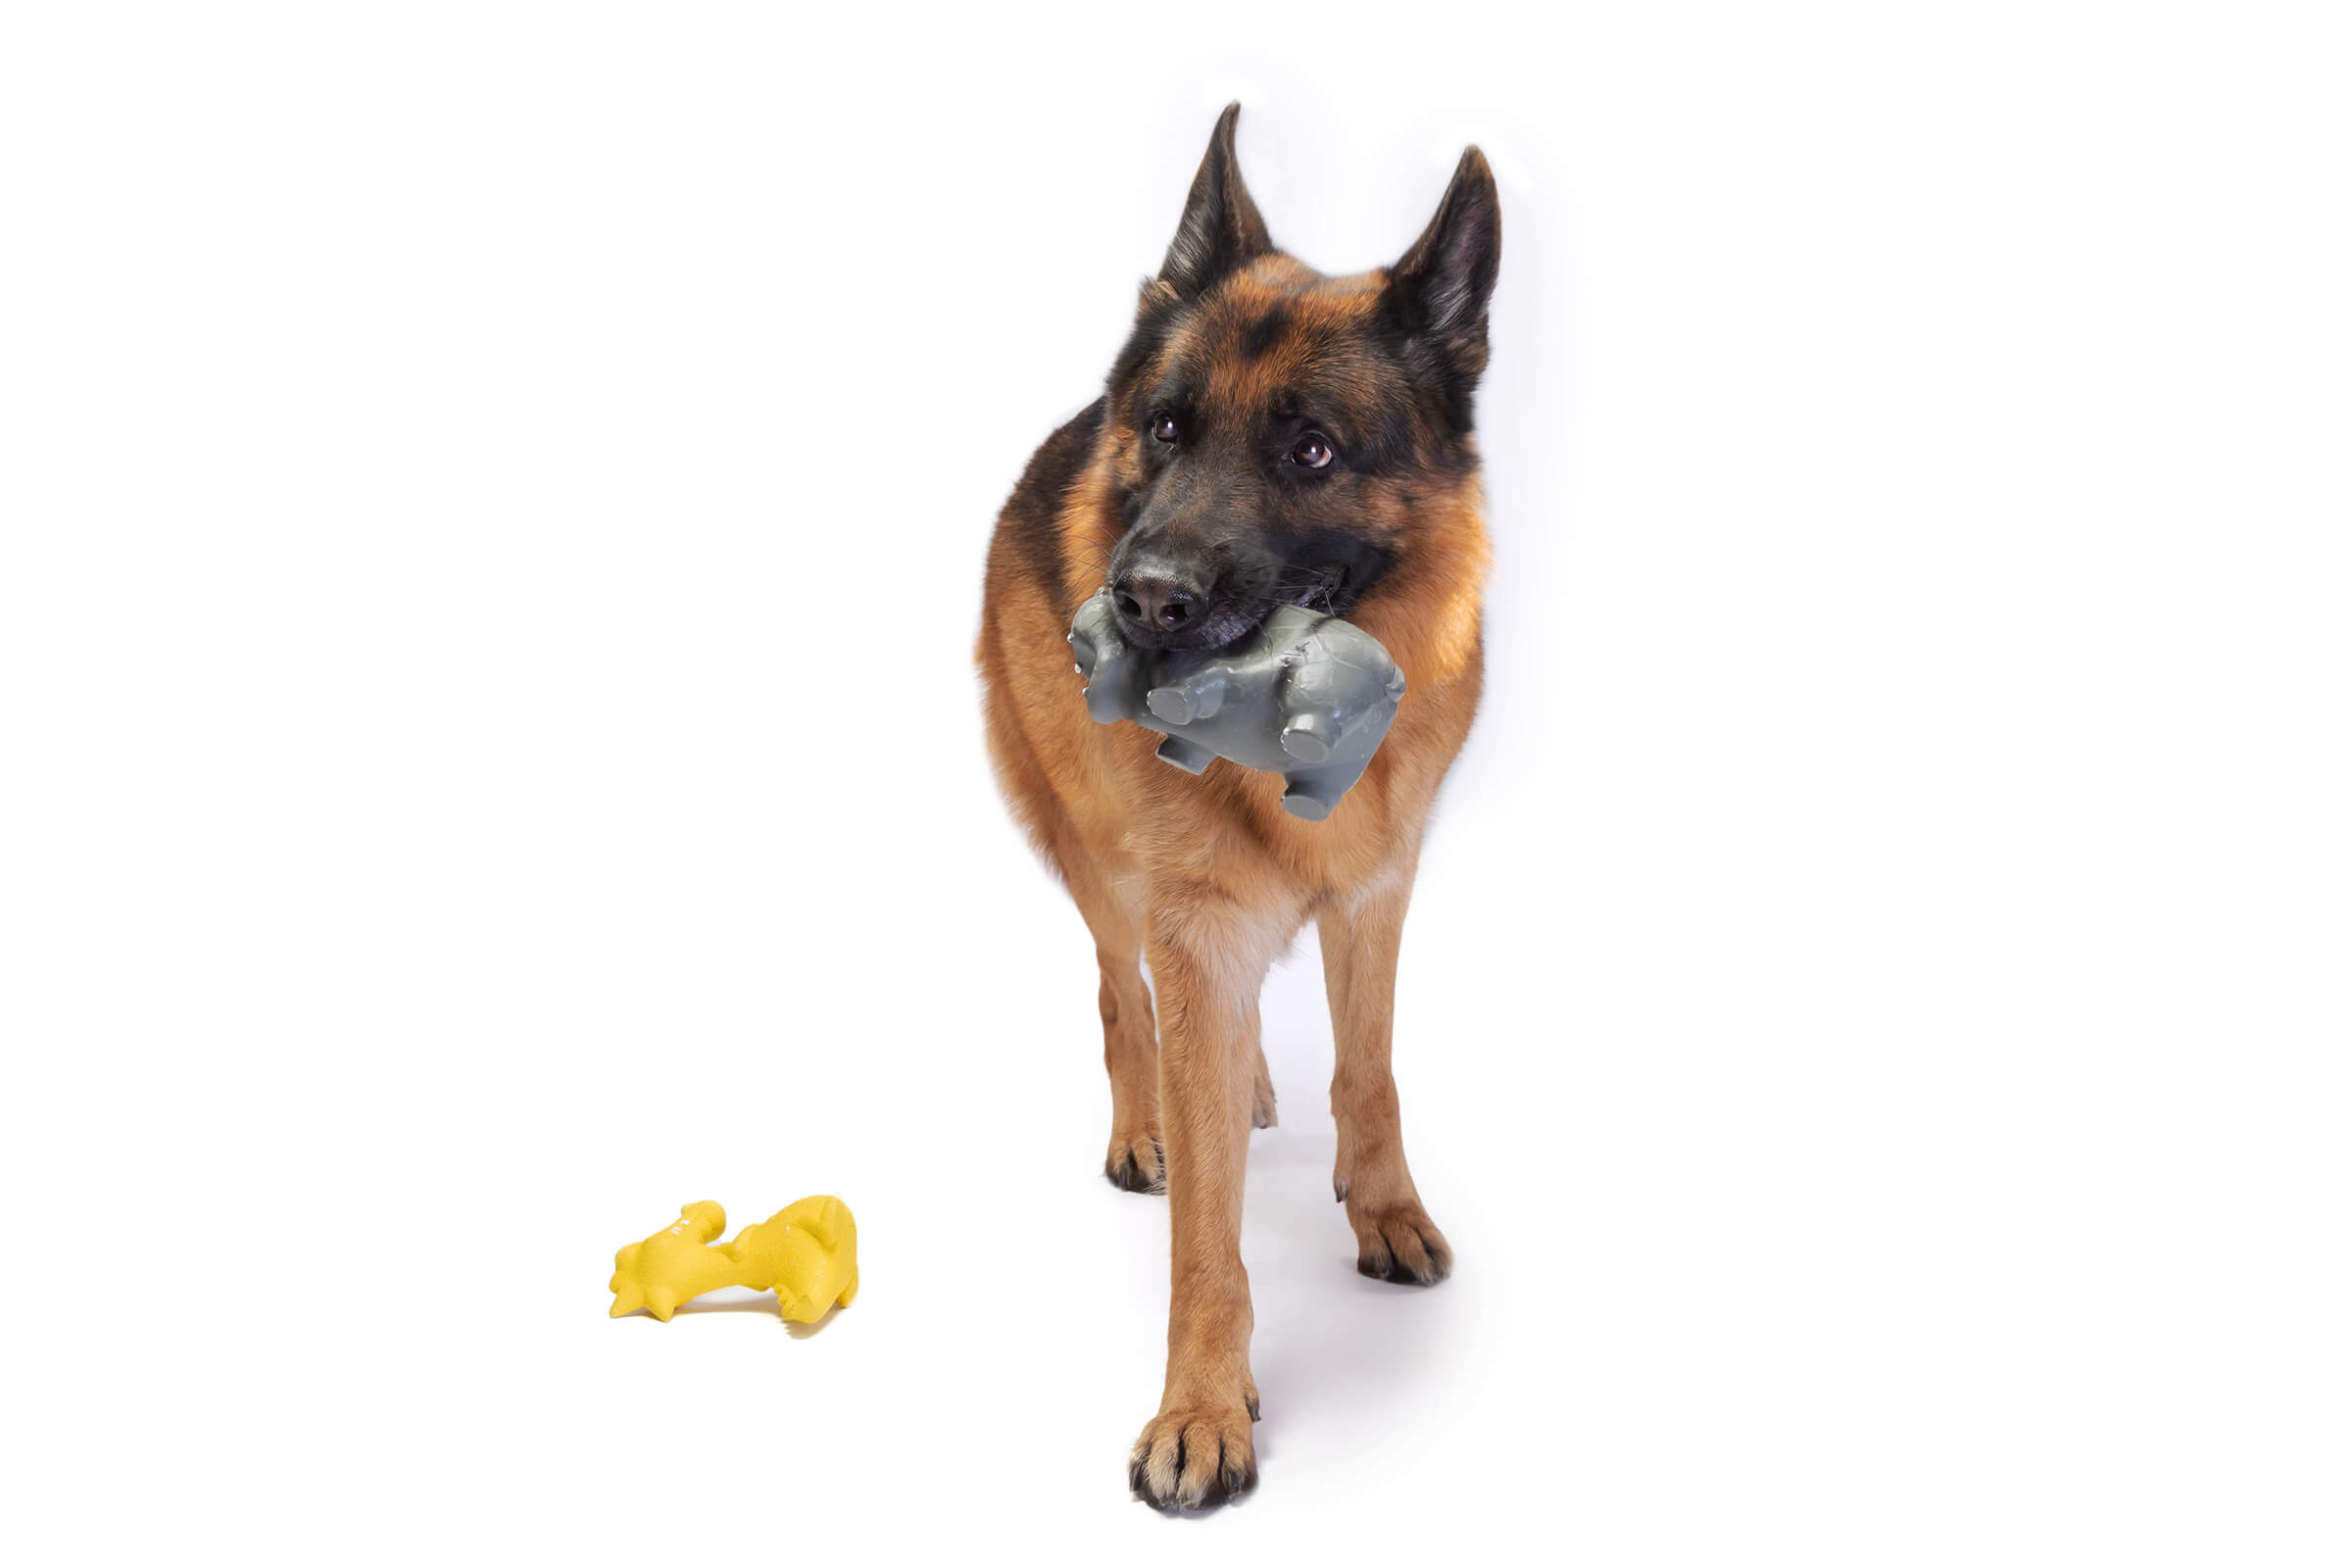 german shepherd with dog toy in his mouth on commercial shoot